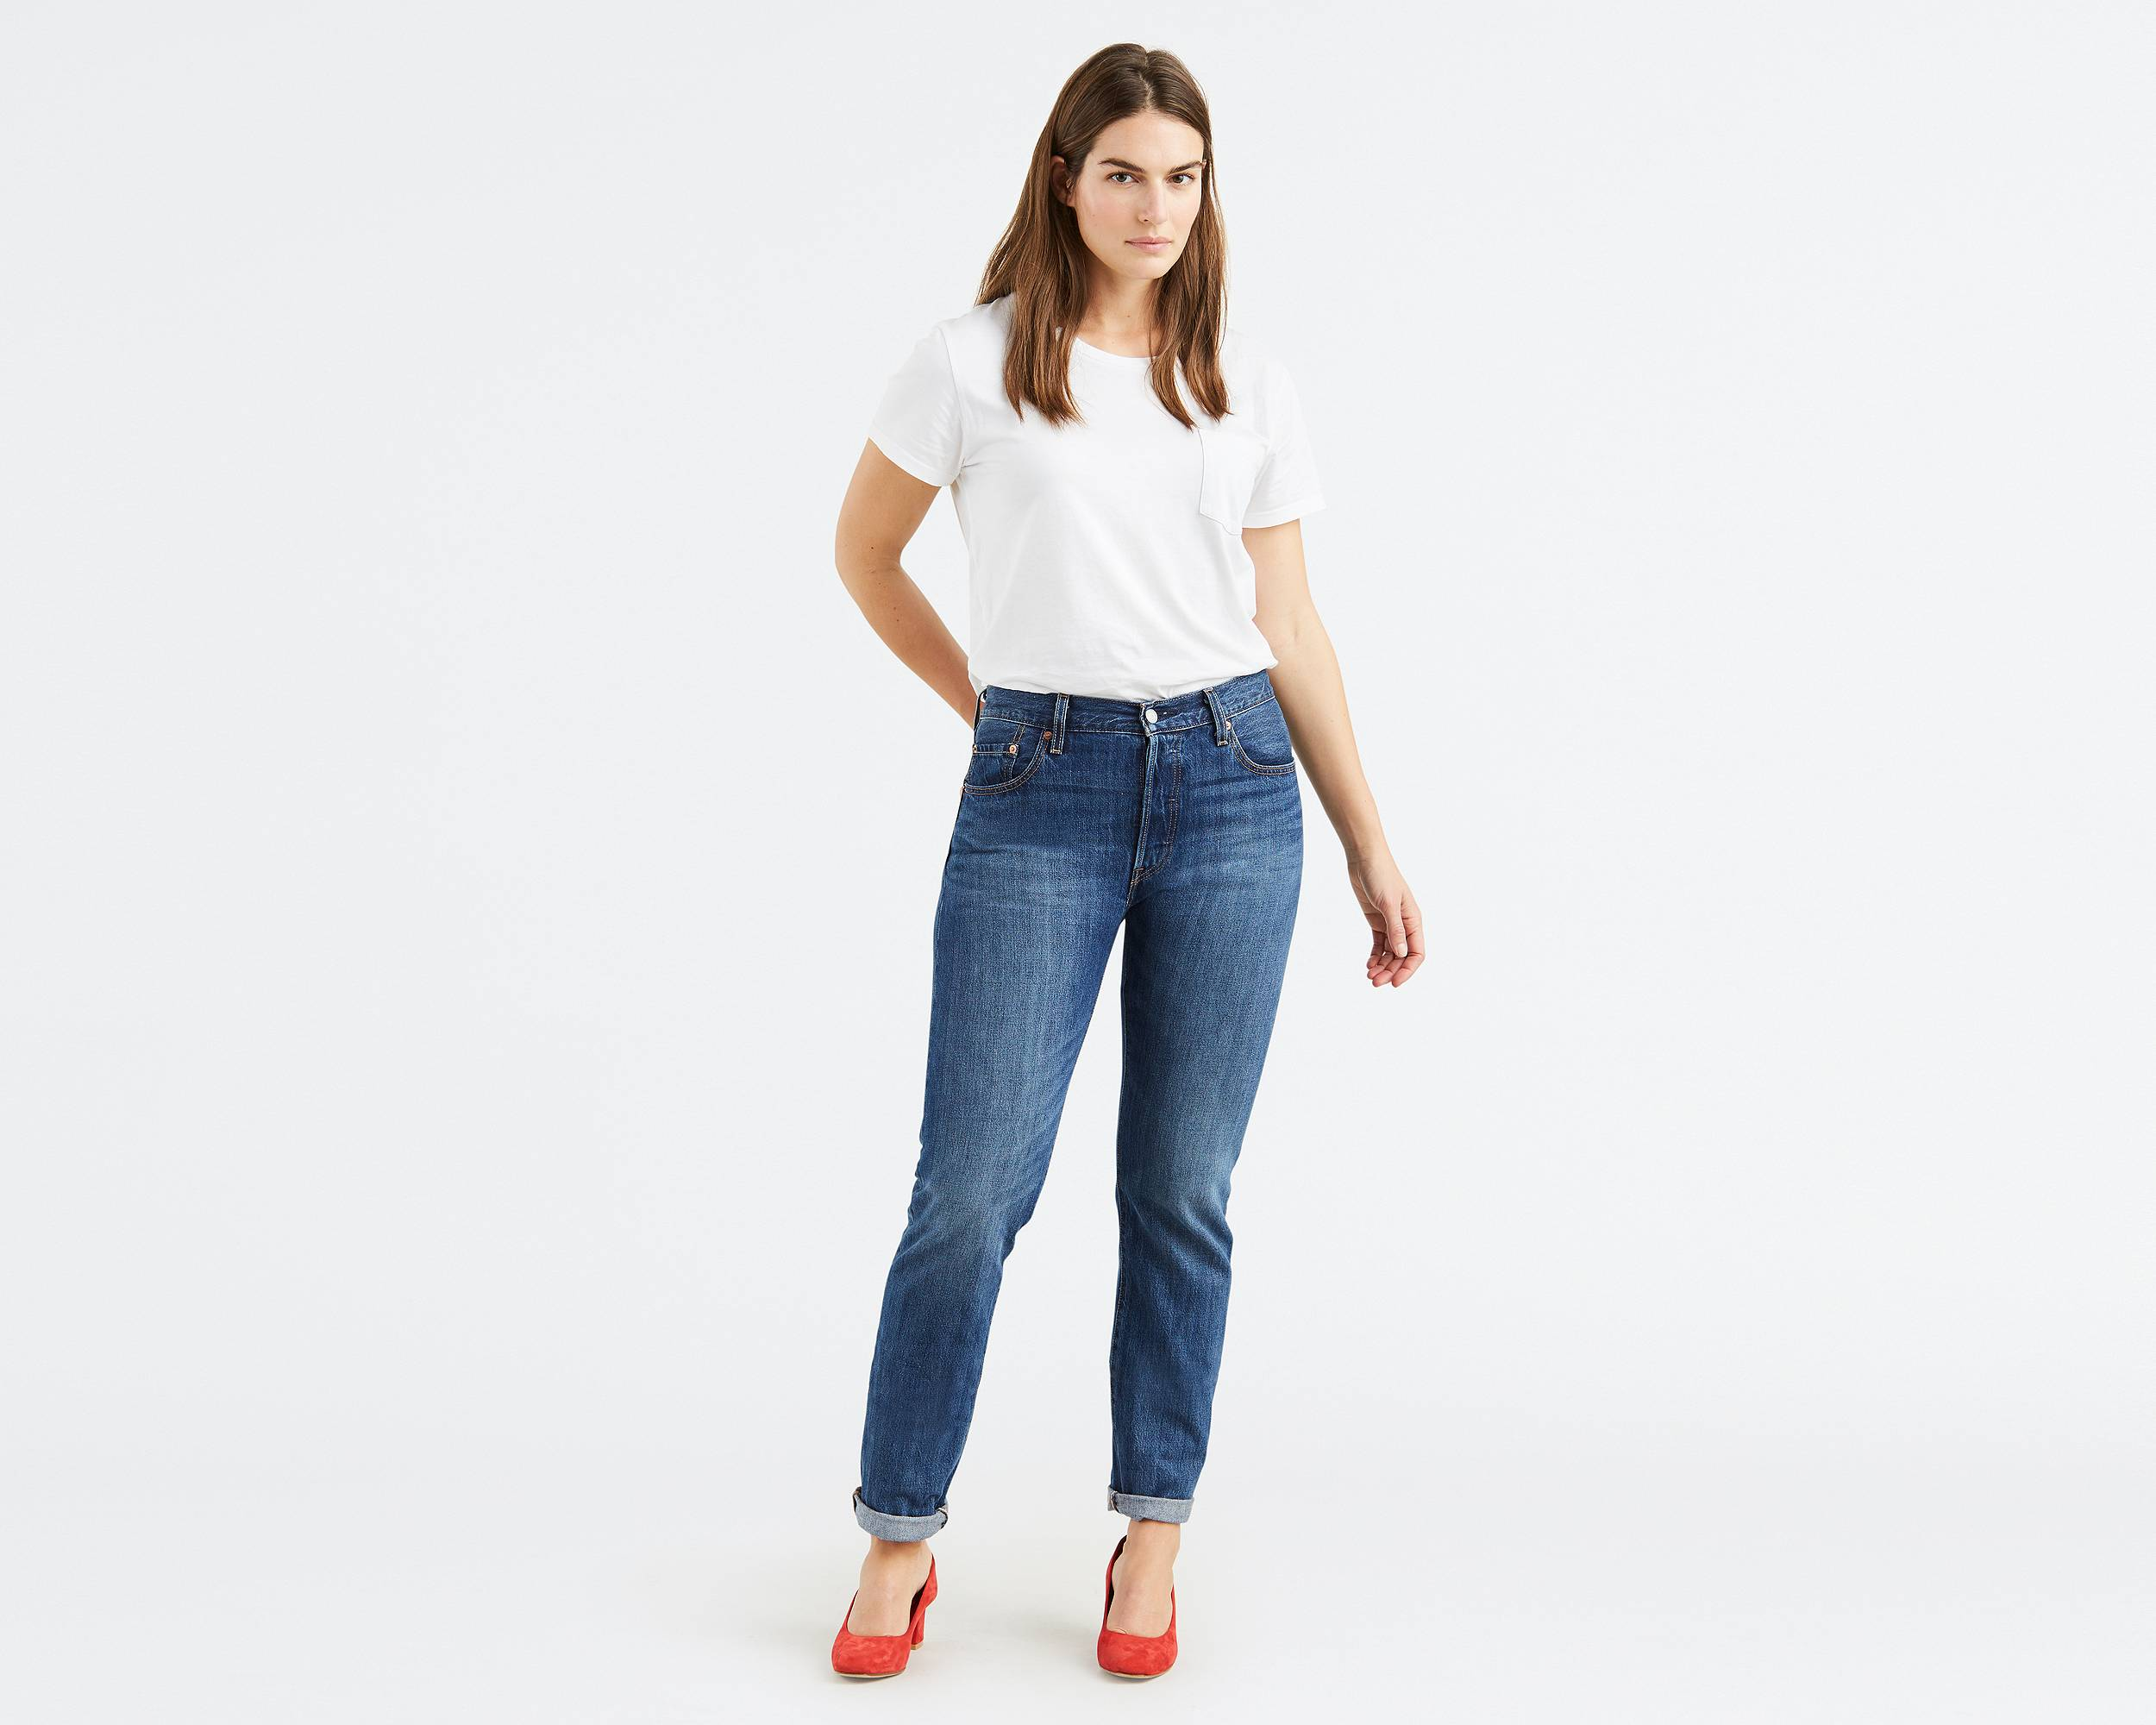 501® Jeans for Women | Lonesome Road |Levi's® United States (US)